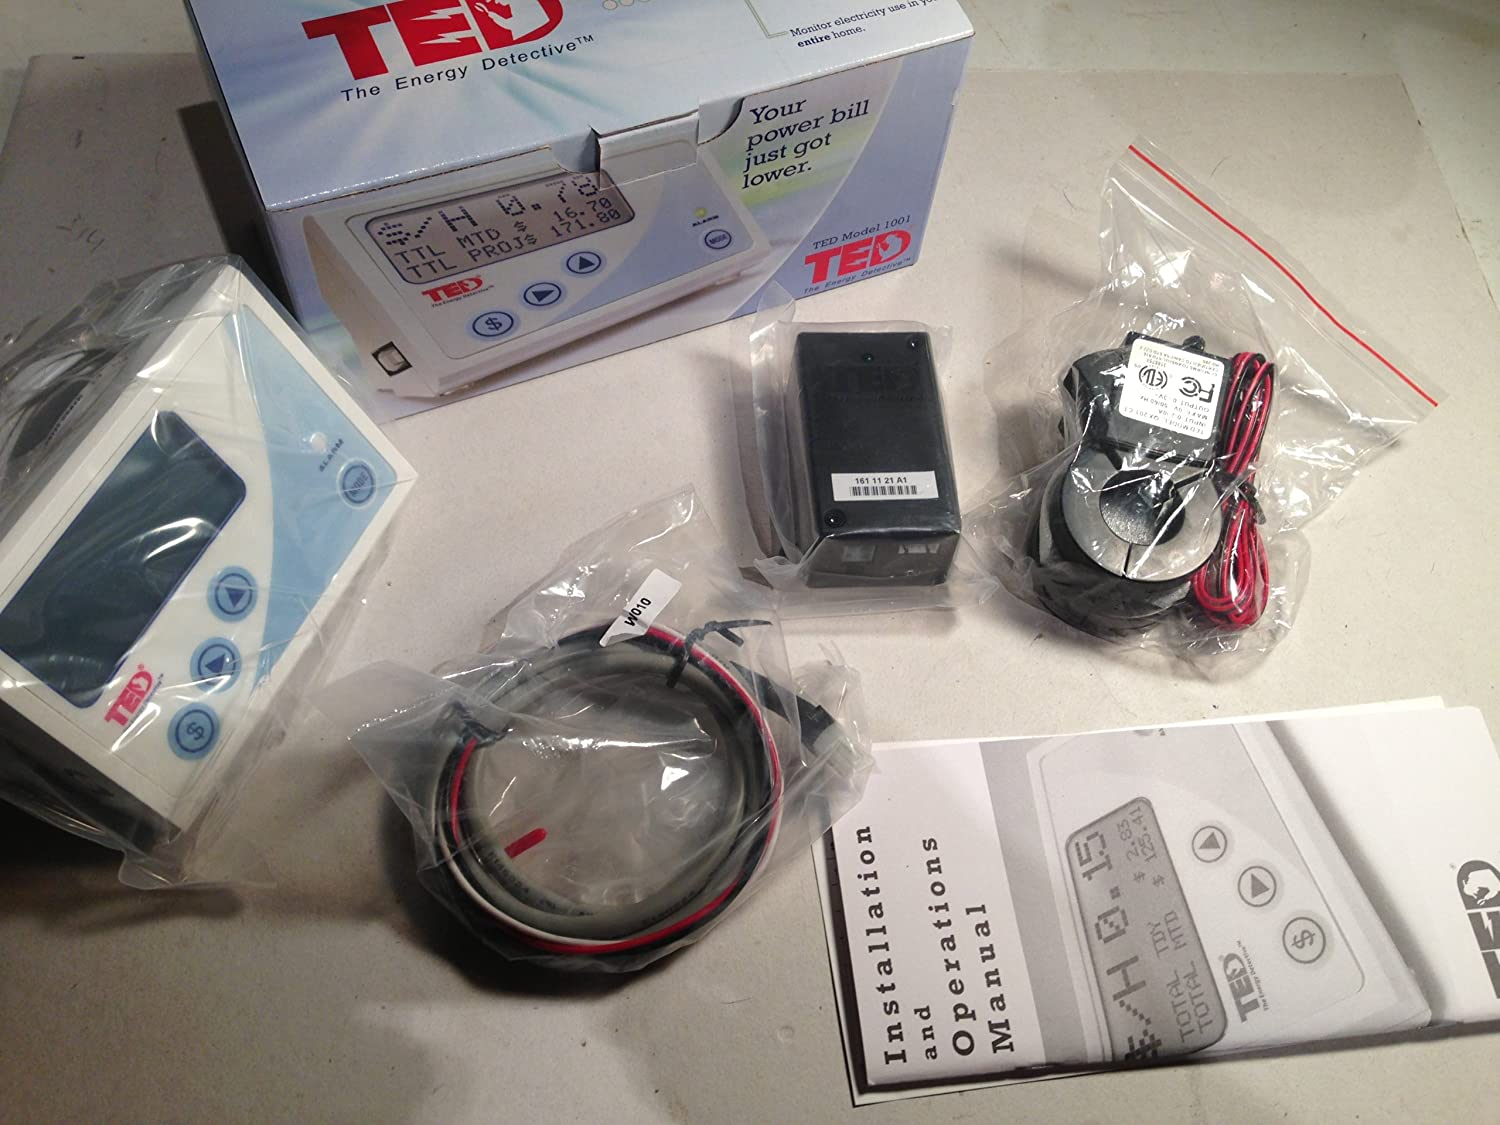 The Energy Detective >> Ted The Energy Detective Electricity Monitor Ted1001 Household